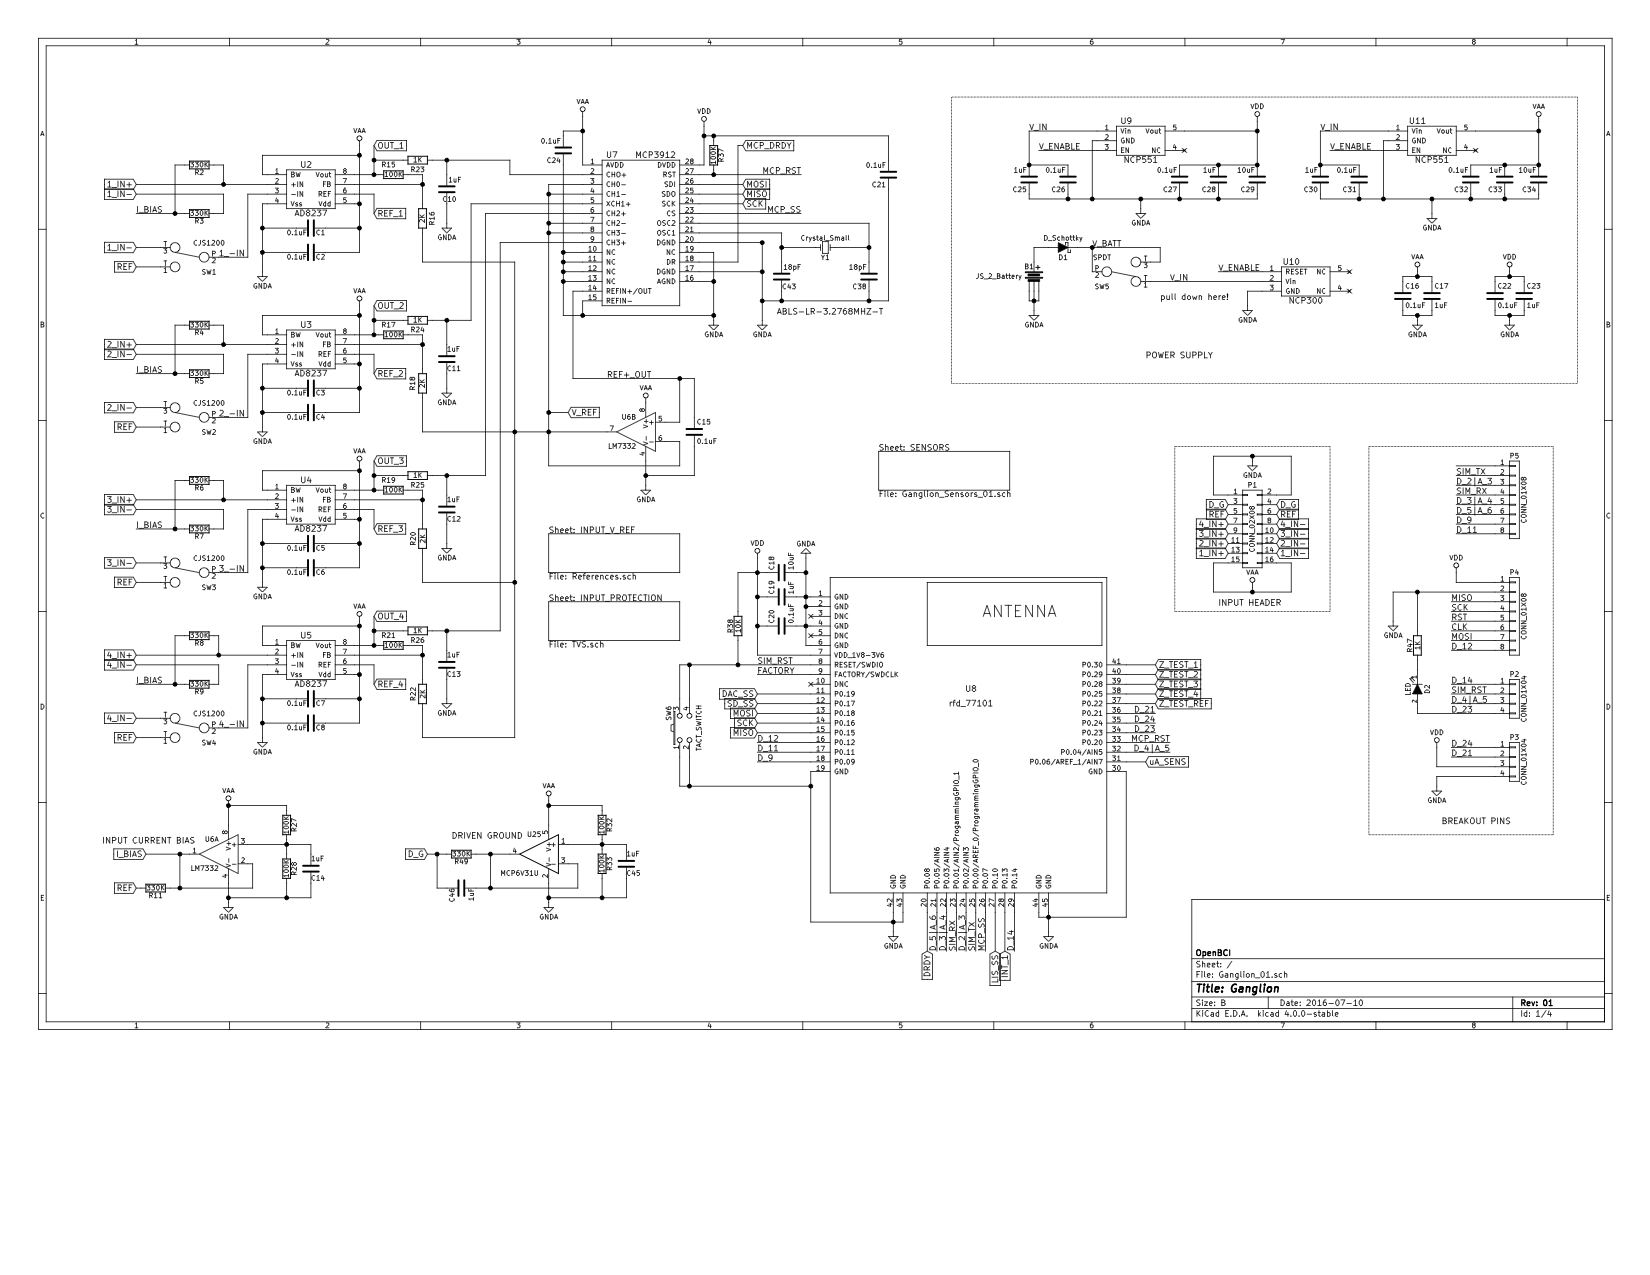 Openbci Ganglion Documentation Instrumentation Amplifier Circuit Diagram This Is Only The First Page Of Schematic Download Entire Here